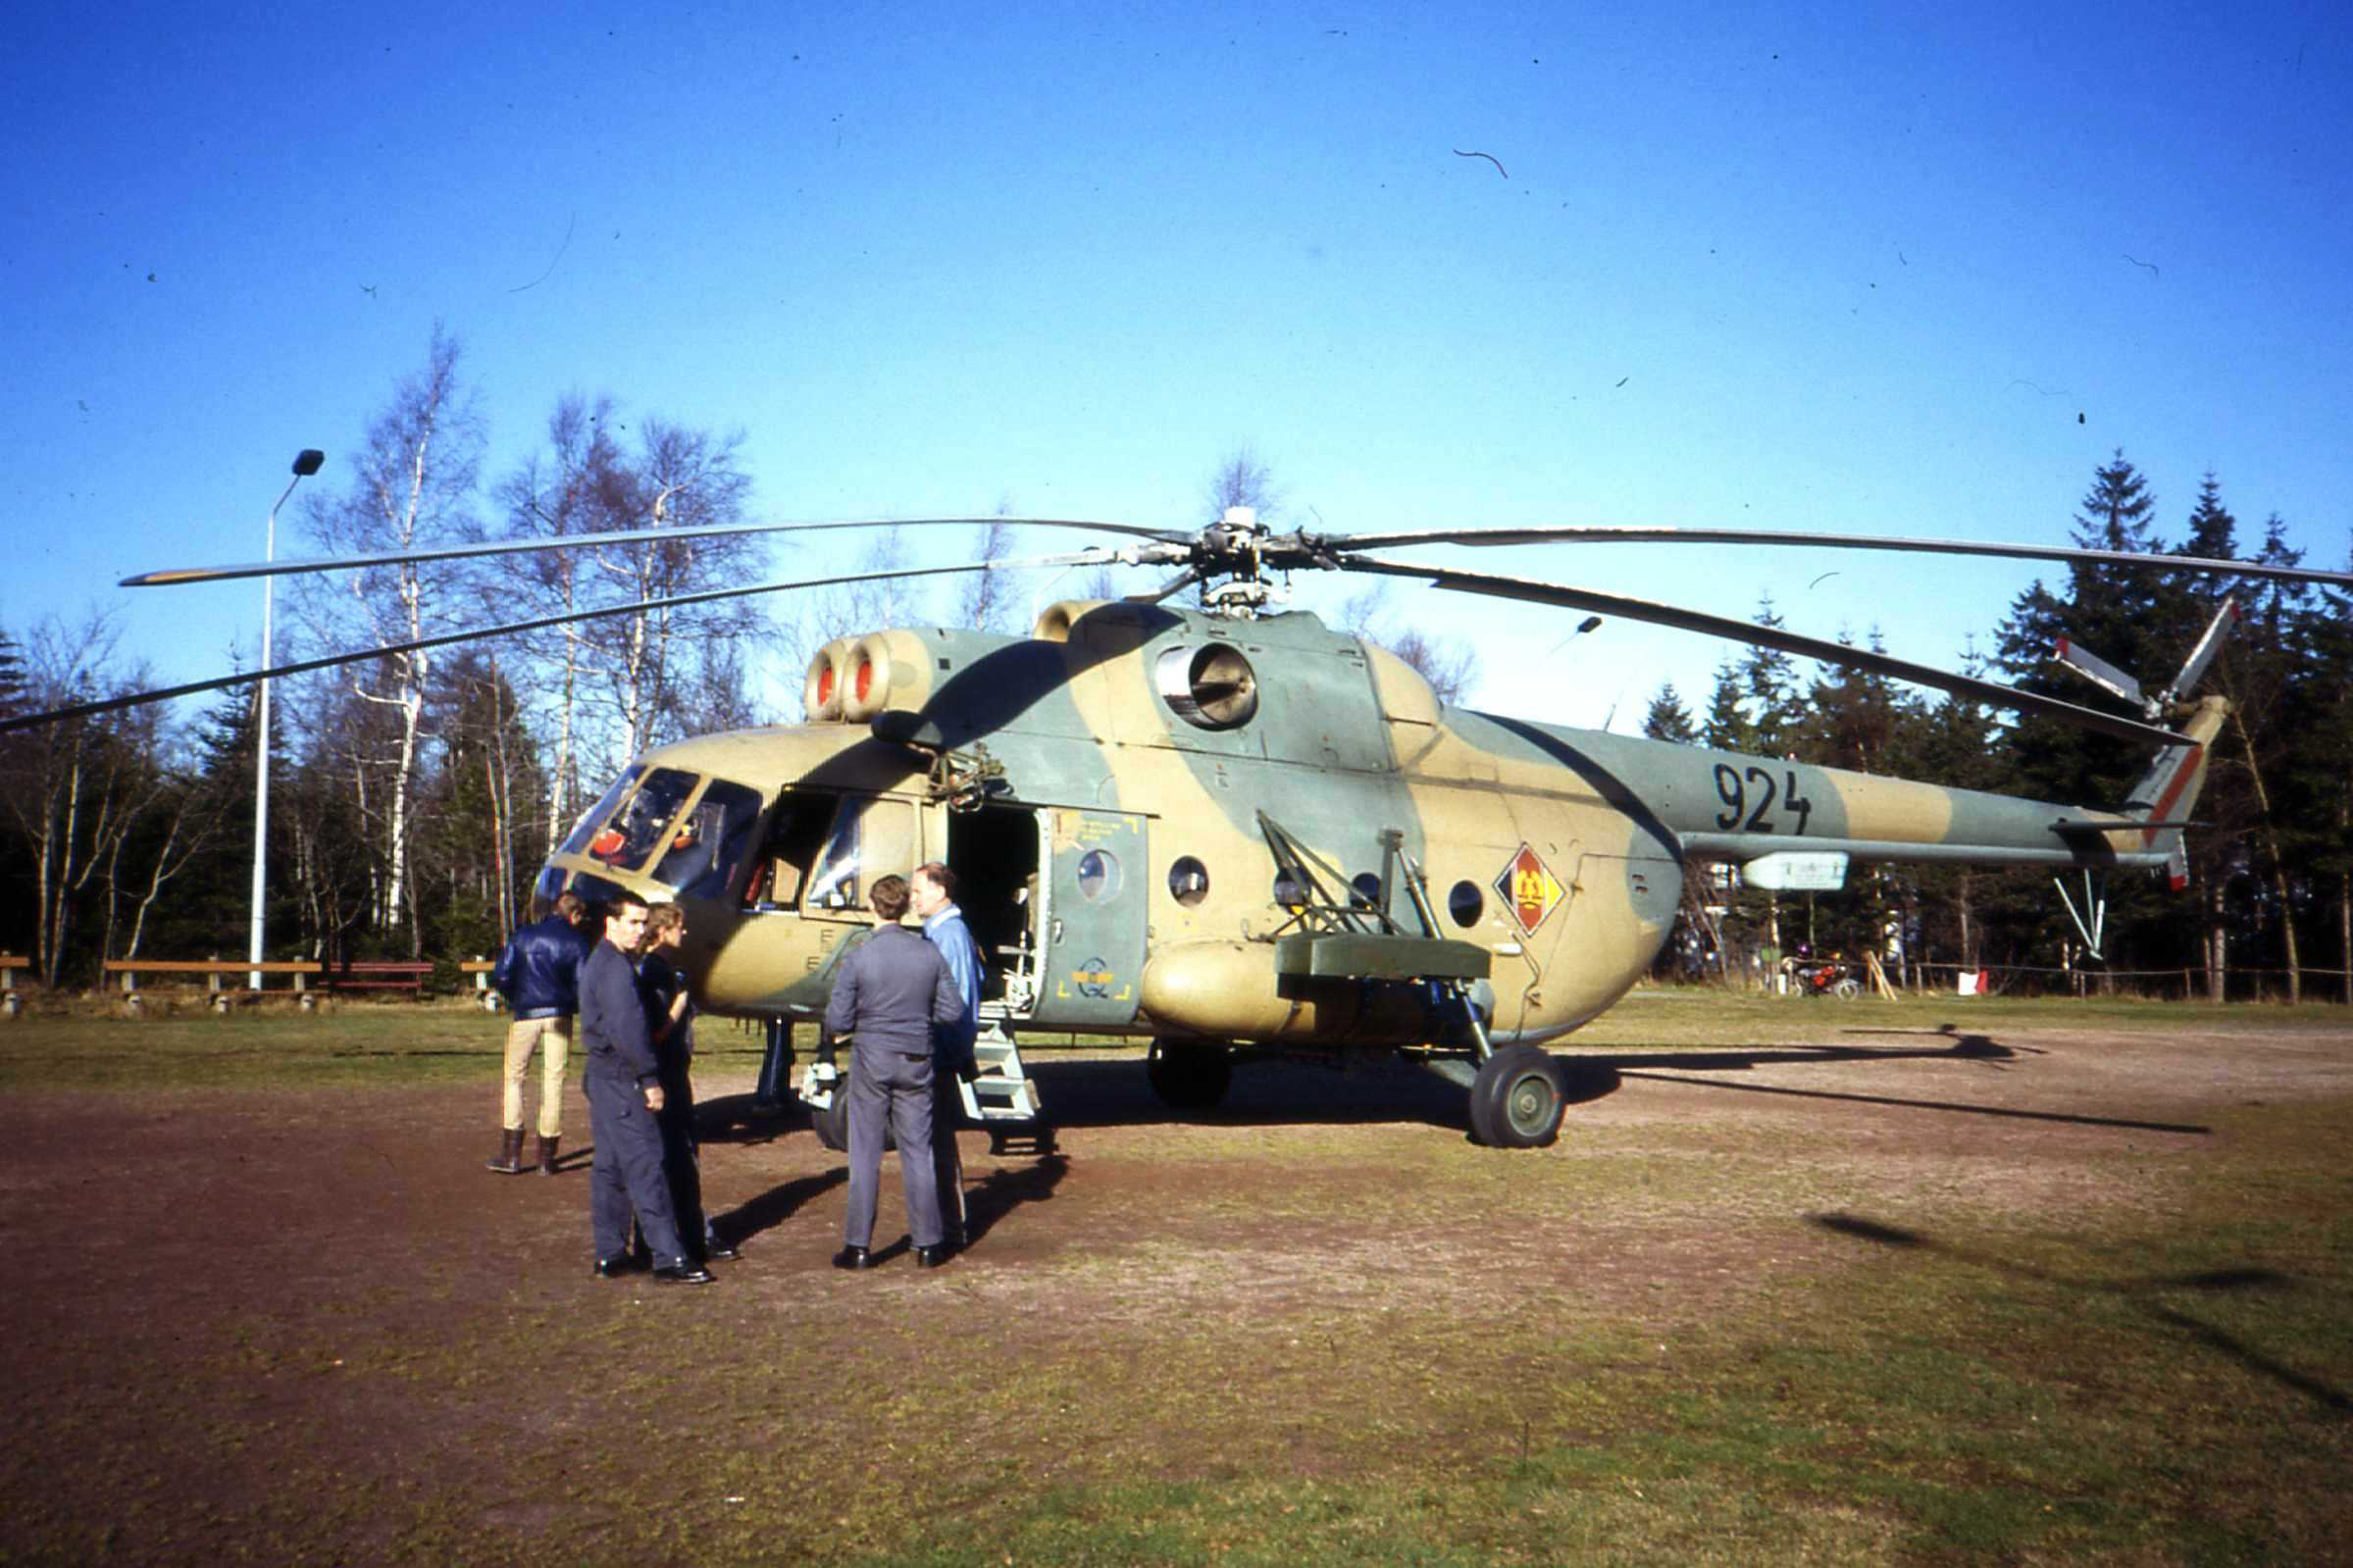 mi 8 helicopter crash with File East German Mi 8 on Beaches likewise File East German Mi 8 moreover File Russian Air Force Mil Mi 8MTV 5 Beltyukov 1 likewise Mi 24 Hind furthermore Liquidadores De Chernobyl.